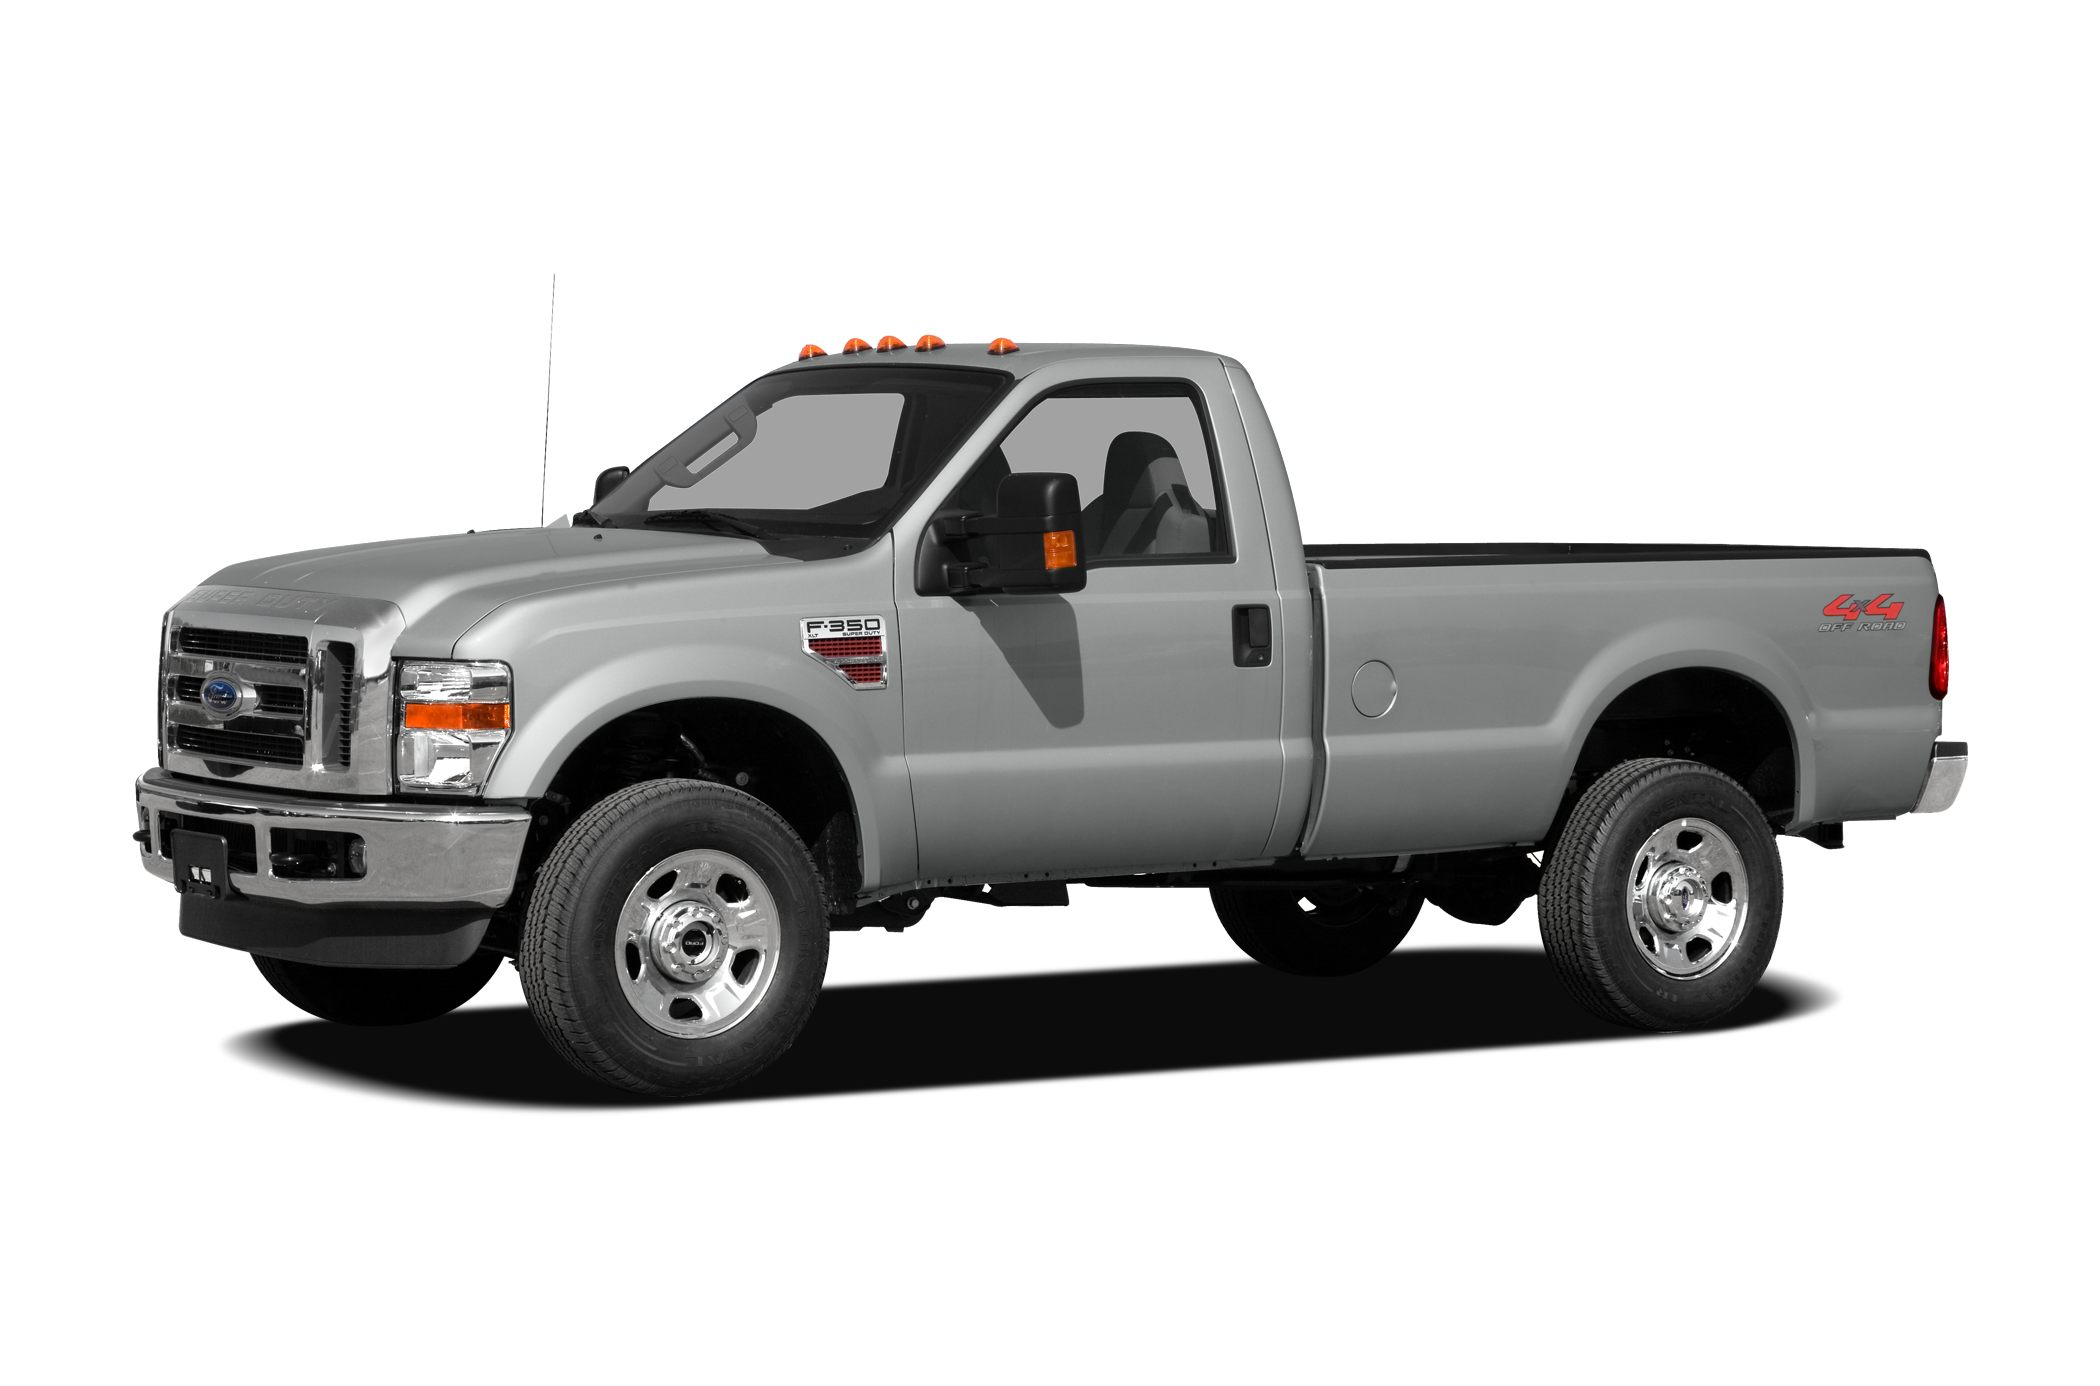 2009 Ford F350 XLT Super Duty Extended Cab Pickup for sale in Henderson for $21,995 with 151,384 miles.